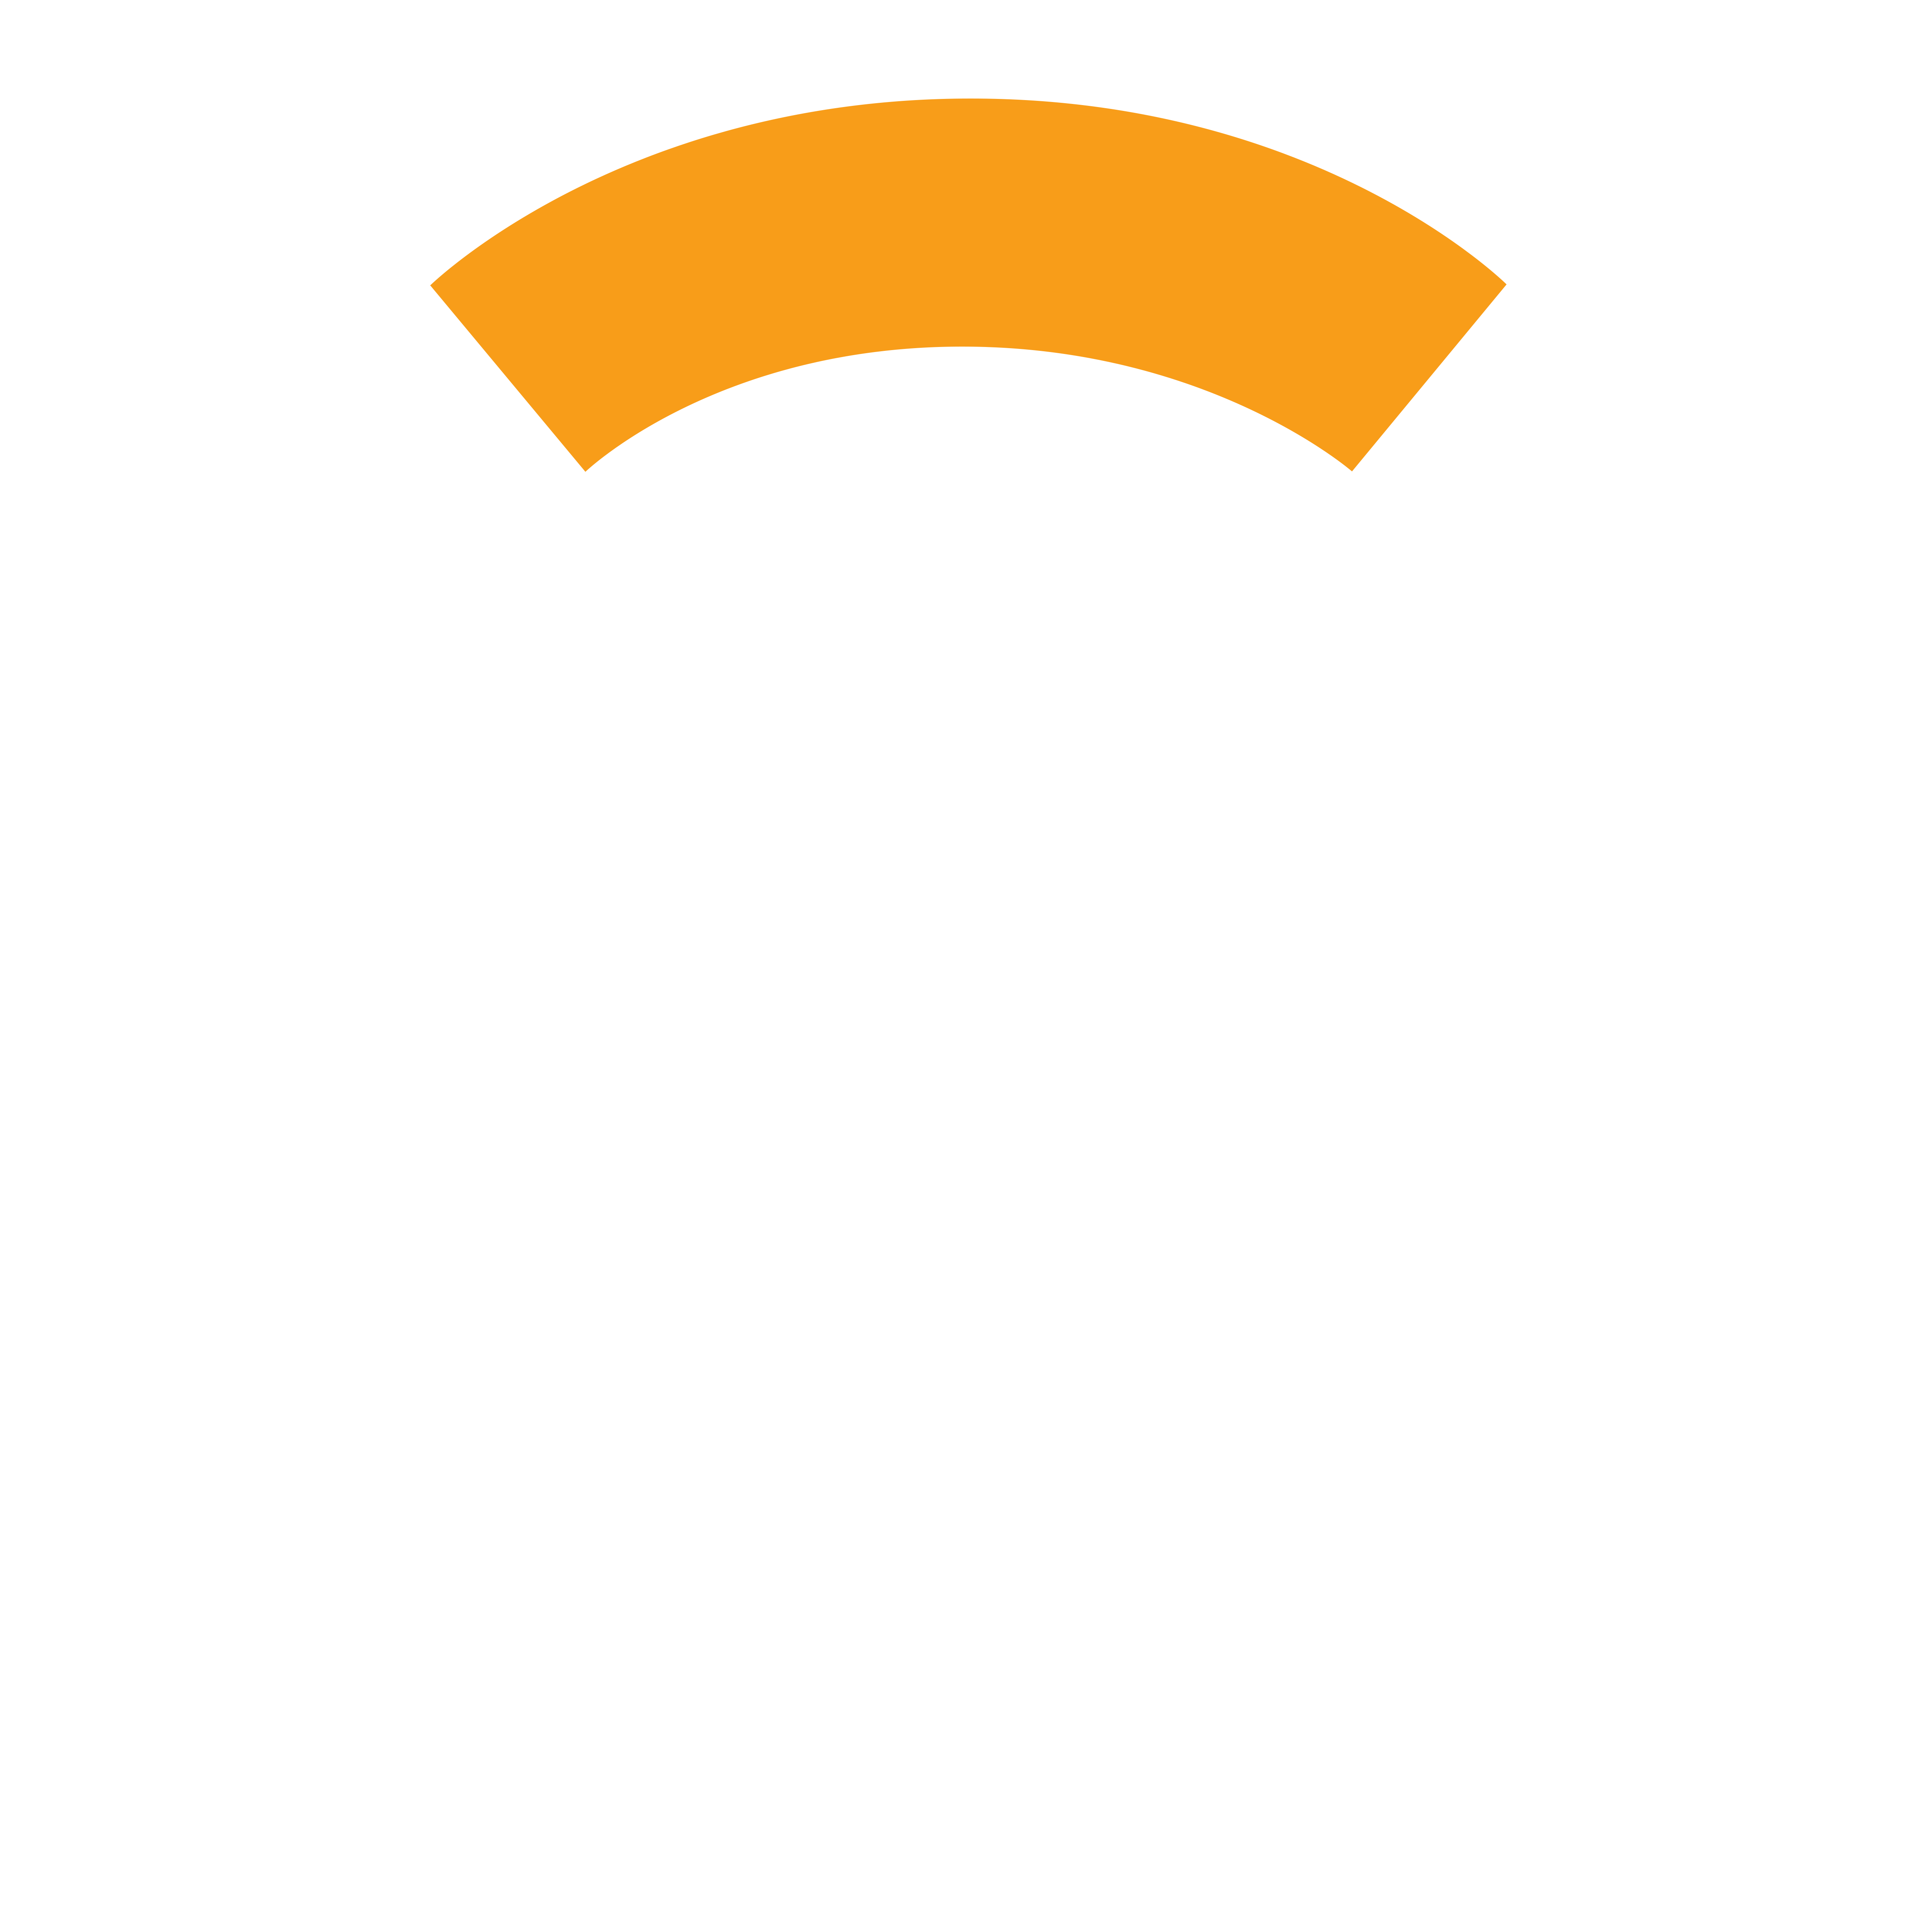 wallpaper designs with Overwatch Logo 659421273 on ROG STRIX RX480 O8G GAMING furthermore Nube   1 598057653 besides 50 Futuristic City Wallpapers together with Turkiye 298541330 besides Pink Grey Clouds Pattern Wall Mural.